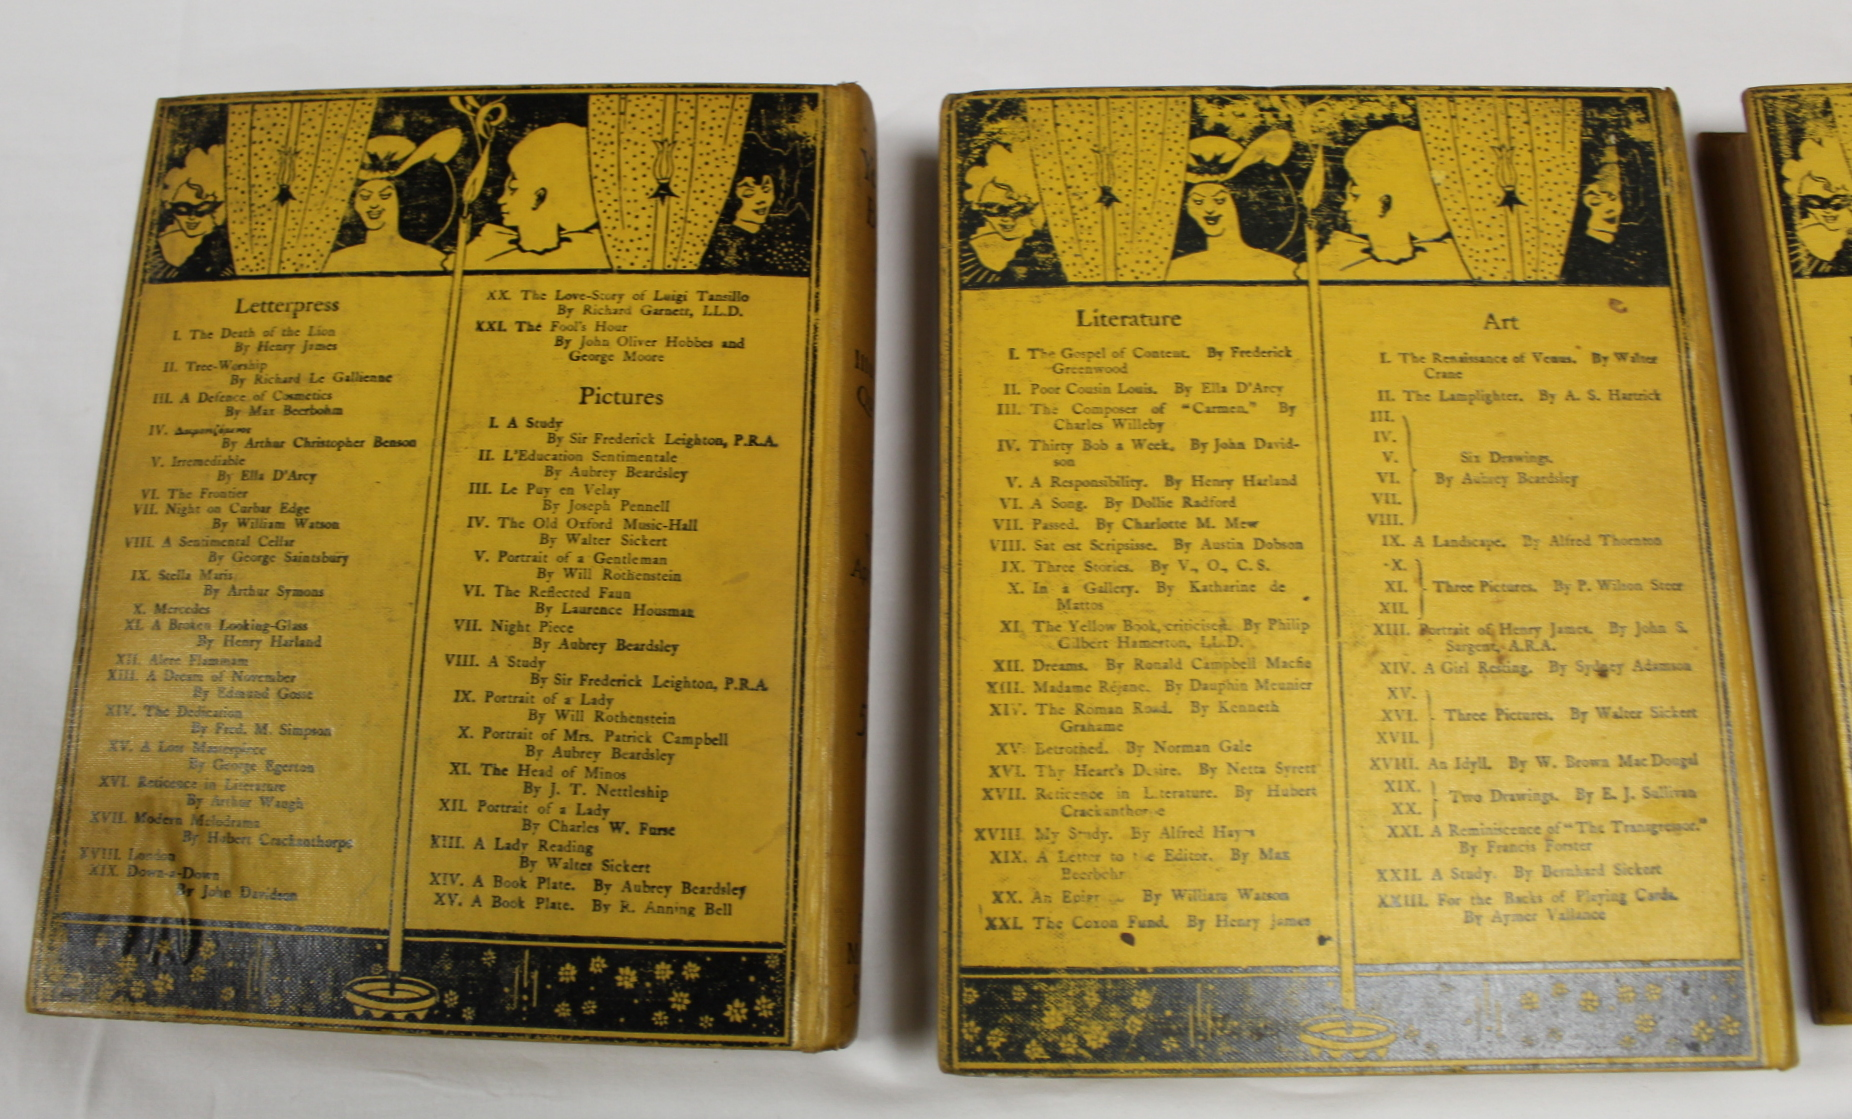 THE YELLOW BOOK.An Illustrated Quarterly. A set of 13 vols., many fine illus. Small quarto. - Image 36 of 45